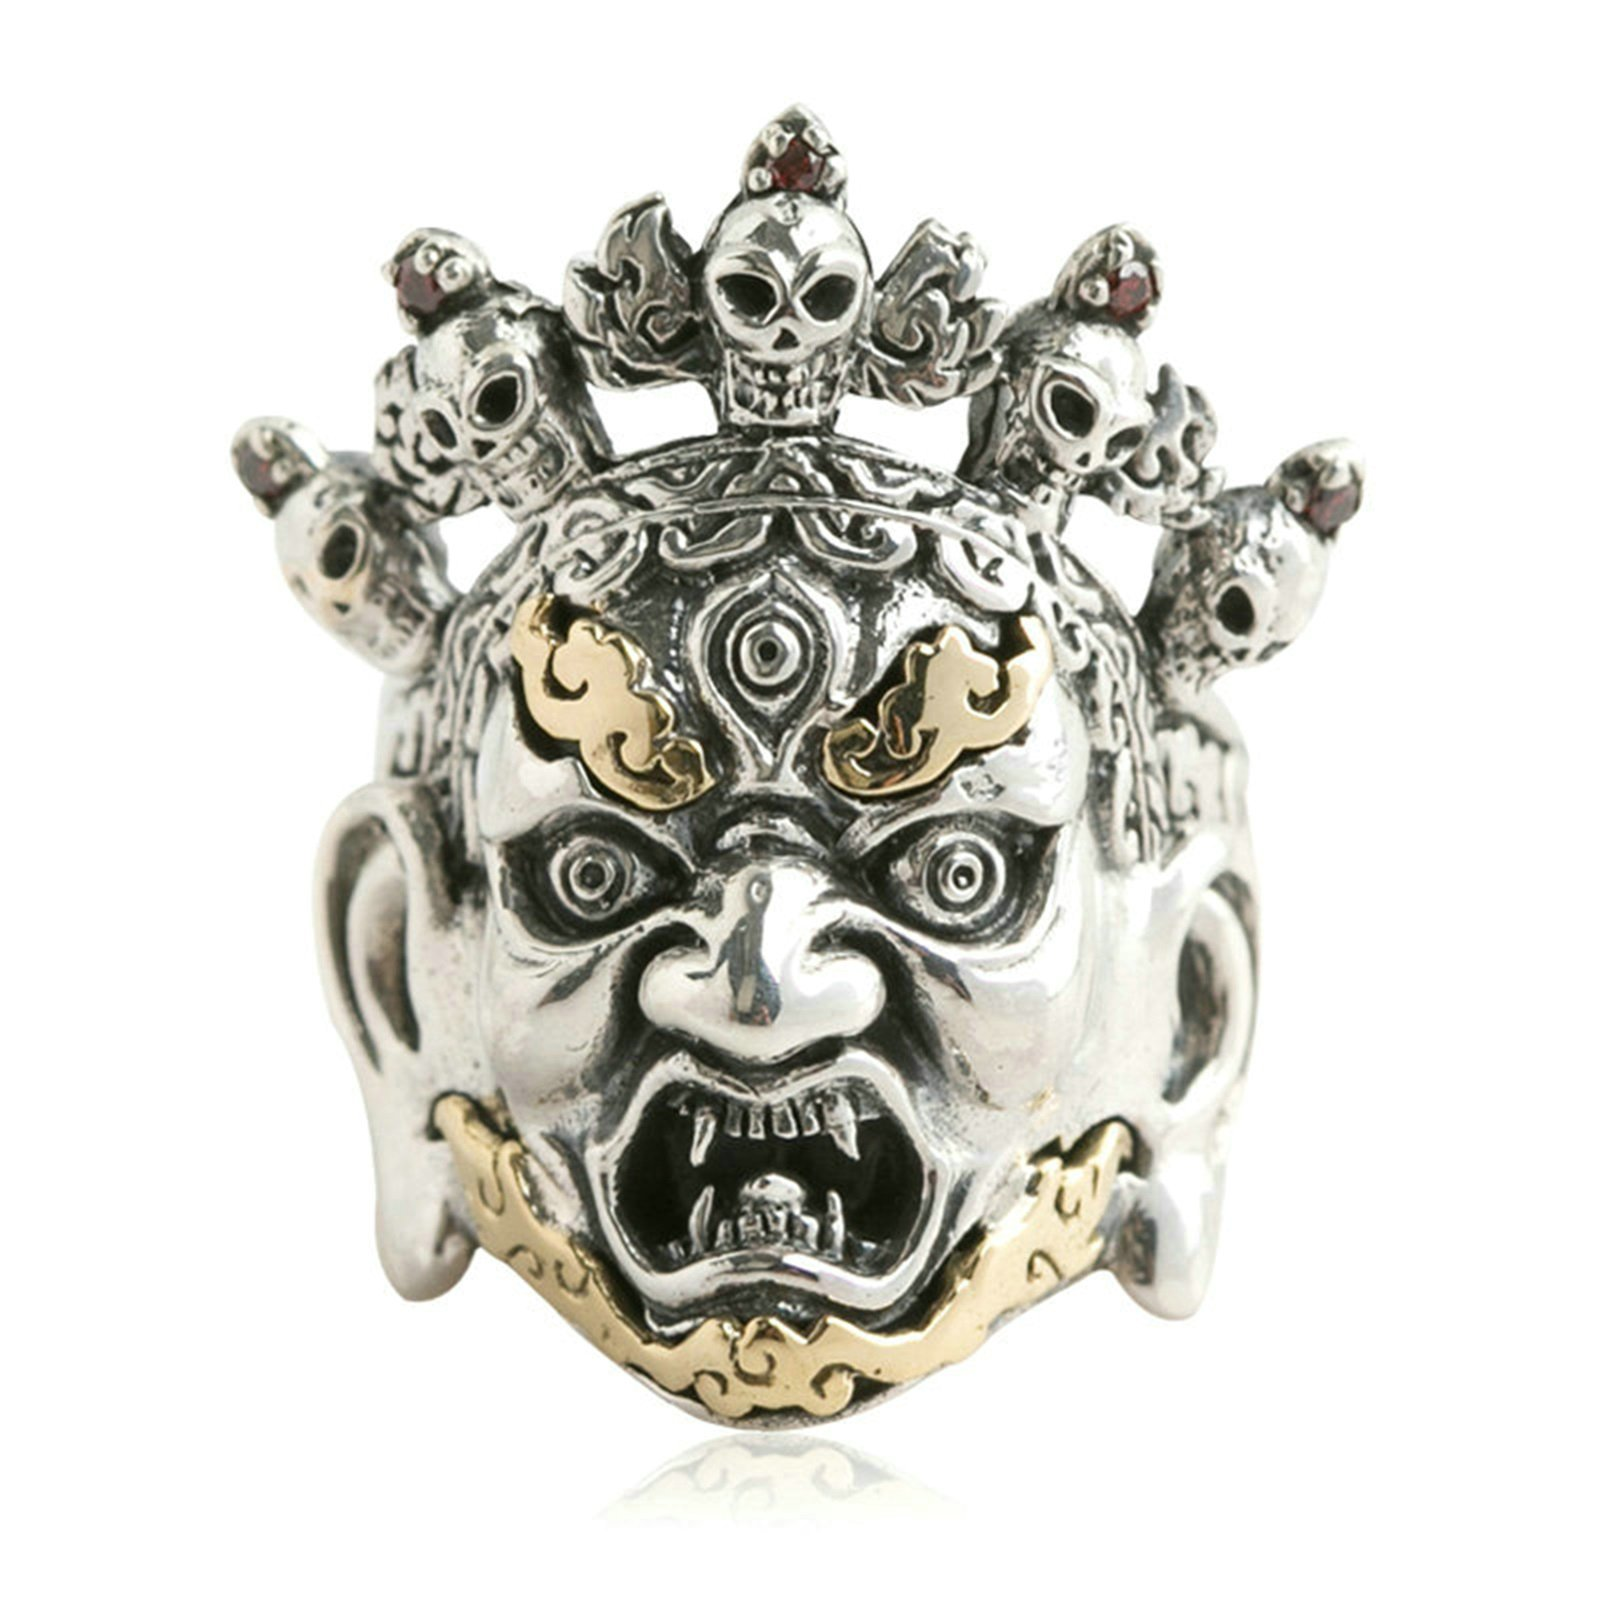 Epinki 925 Sterling Silver Punk Rock Vintage Gothic Skull Head Fire Ring for Men Size 10 by Epinki